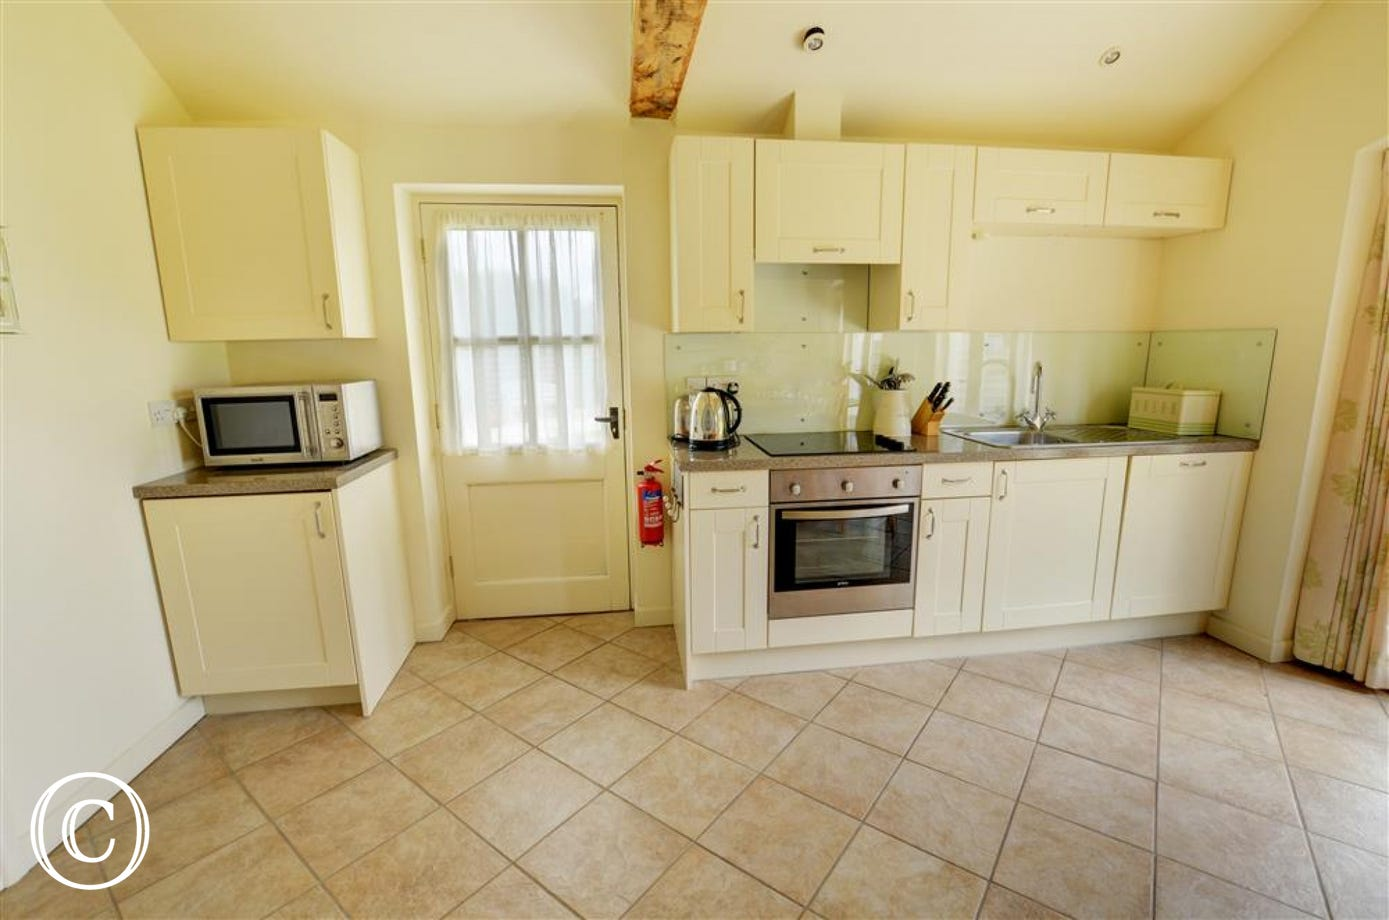 The kitchen is a light room well equipped with all that you might need for your self catering holiday